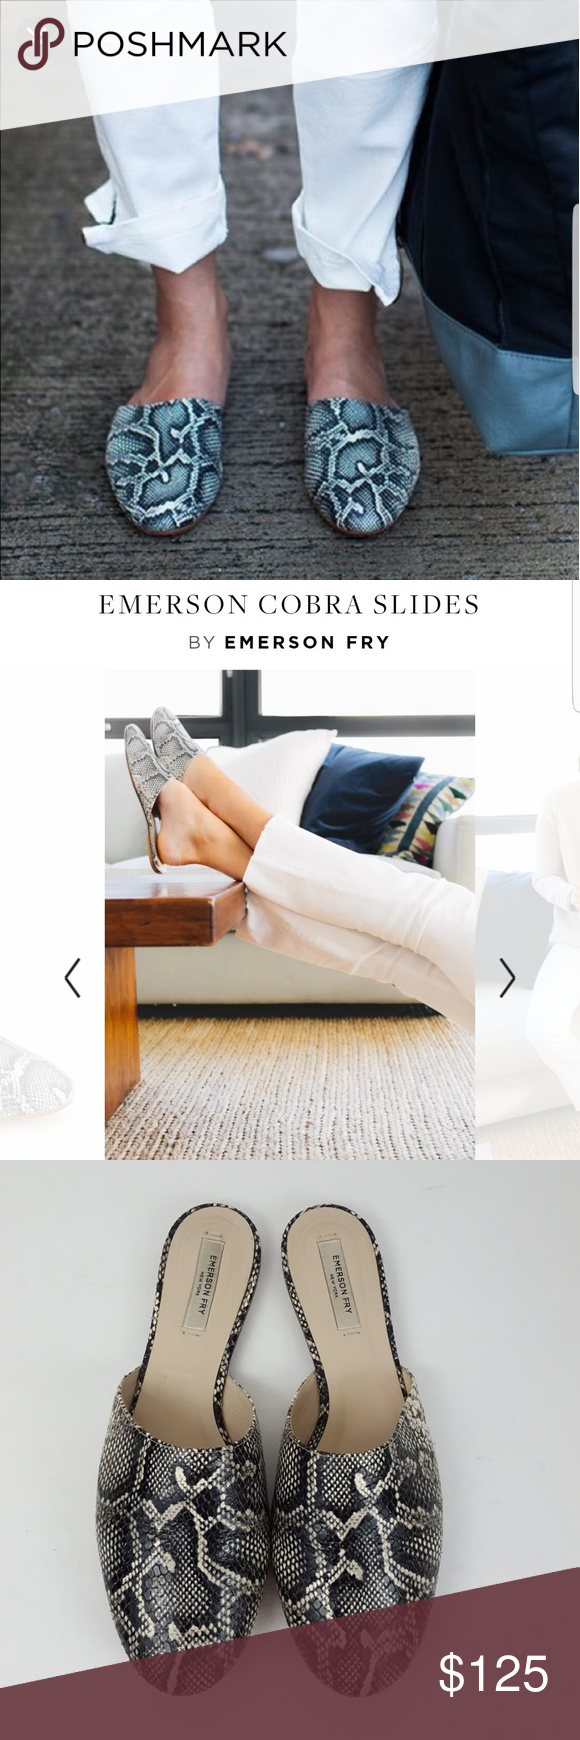 Emerson Fry Cobra Slides Leather Emerson Fry Cobra Slides. Leather outer soles and interior soles.   ***Shoes Still in stores at MSRP$240***  No tears, no stains.  Size US 9, true to size. Will also fit US 8.5 Emerson Fry Shoes Flats & Loafers #emersonfry Emerson Fry Cobra Slides Leather Emerson Fry Cobra Slides. Leather outer soles and interior soles.   ***Shoes Still in stores at MSRP$240***  No tears, no stains.  Size US 9, true to size. Will also fit US 8.5 Emerson Fry Shoes Flats & Loafers #emersonfry